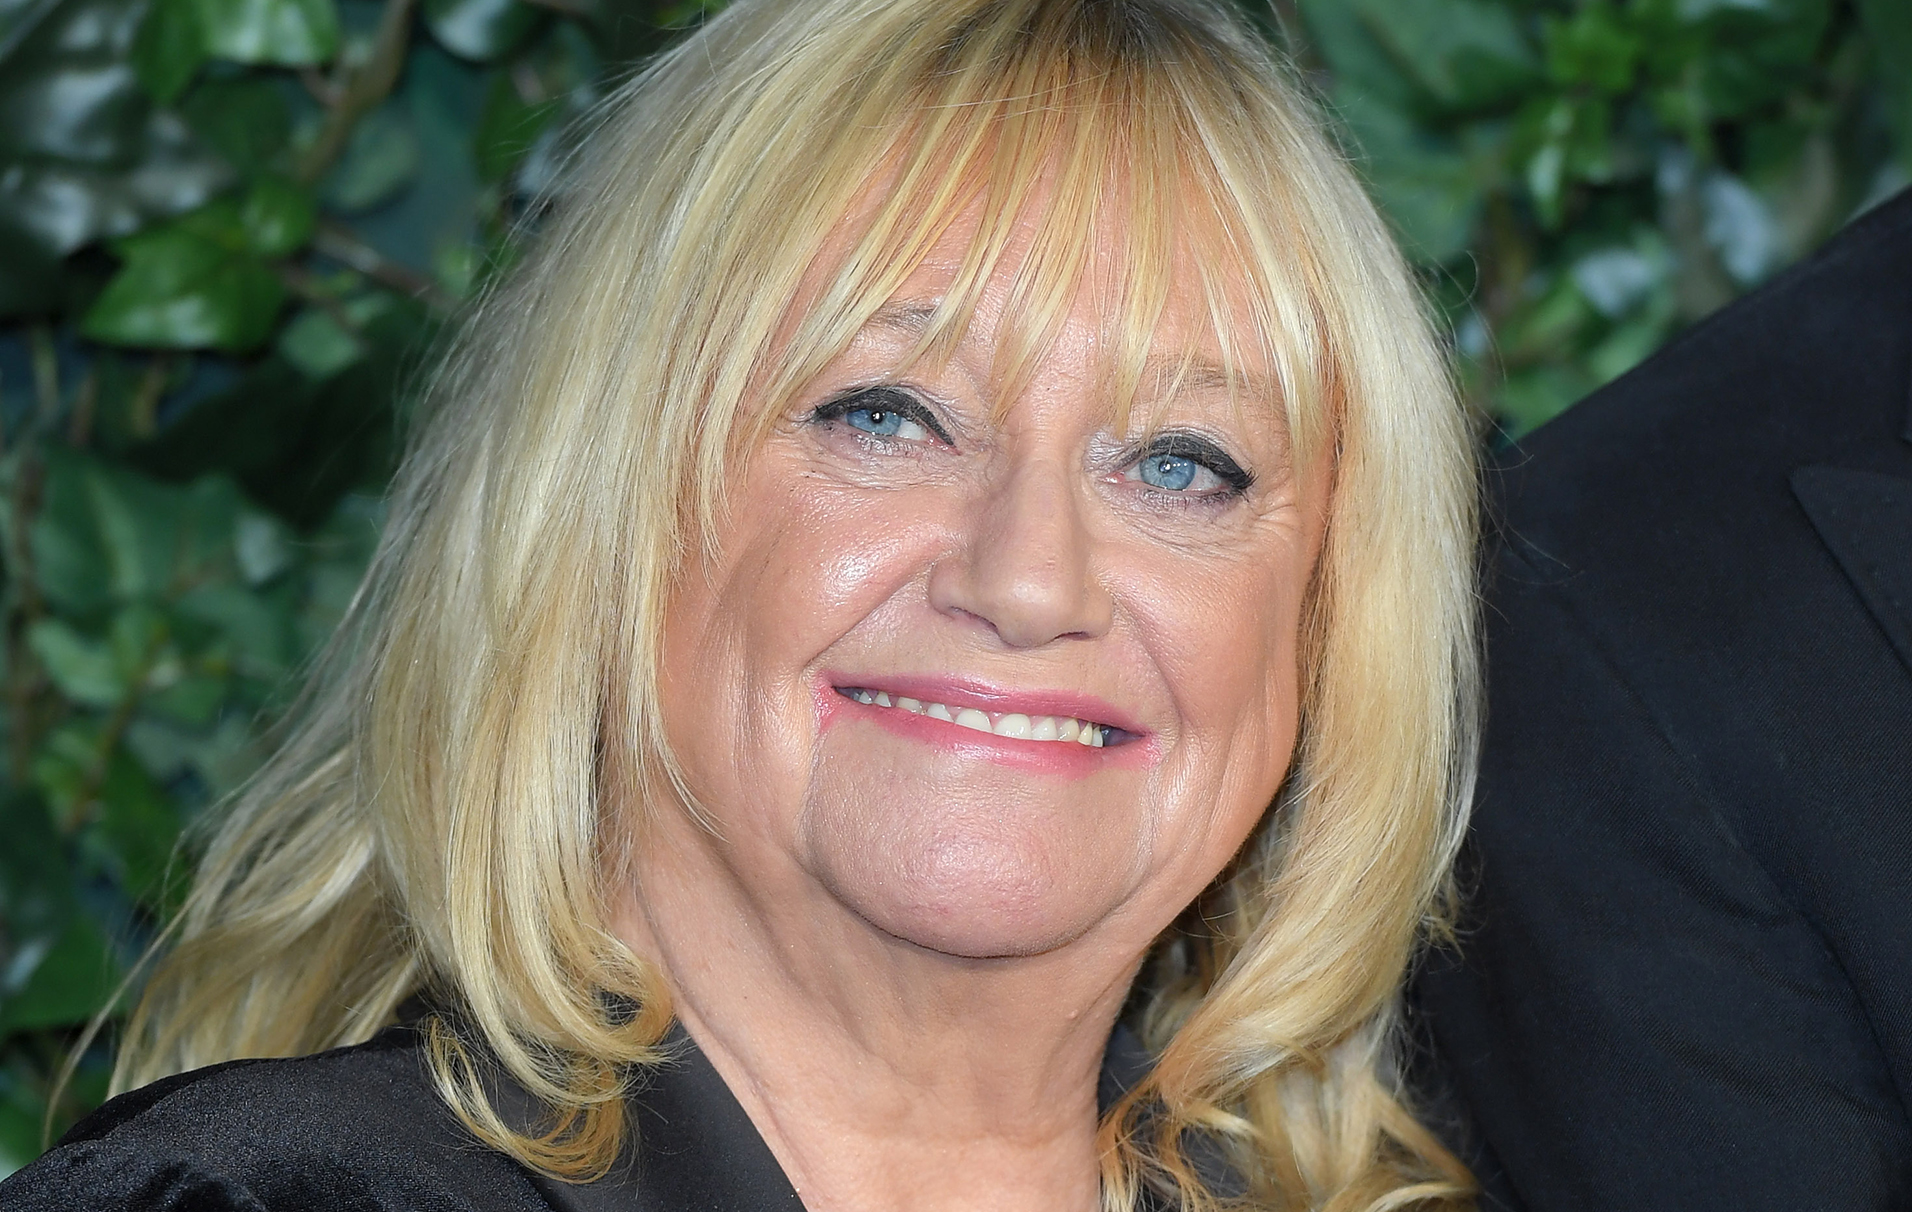 Judy Finnigan on why she REALLY stepped back from TV work